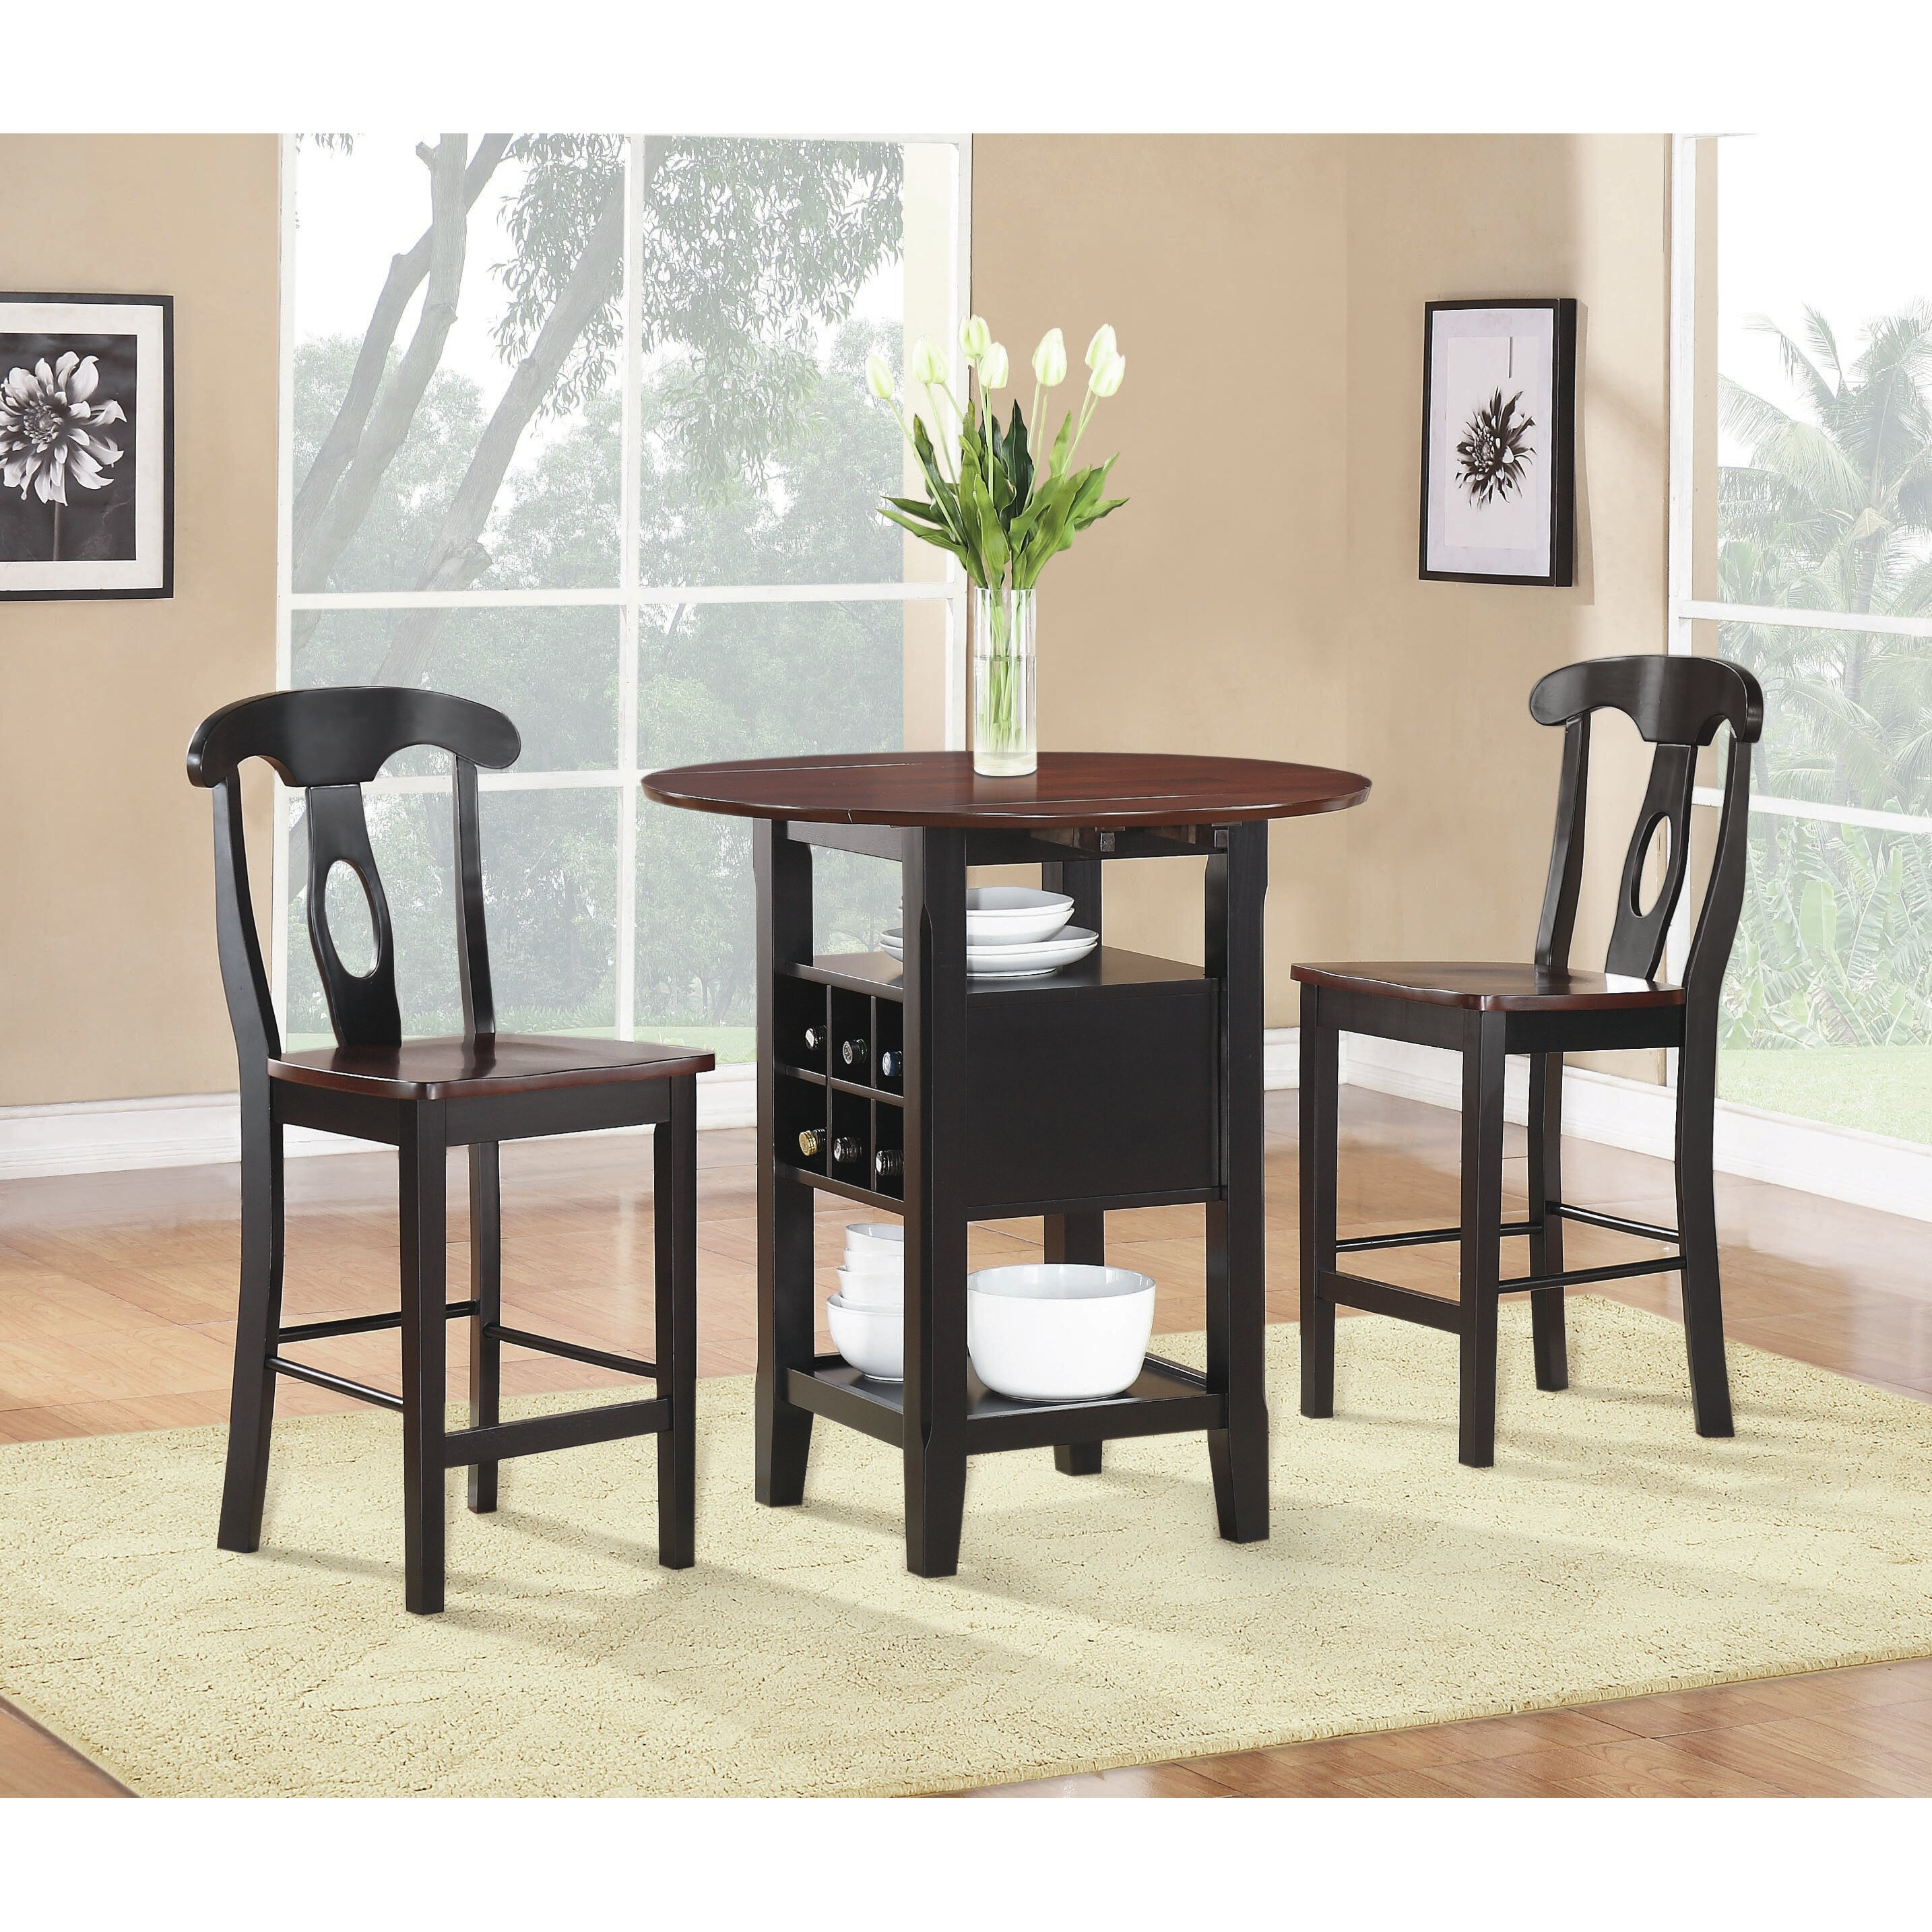 woodhaven hill atwood 3 piece counter height dining set reviews wayfair. Black Bedroom Furniture Sets. Home Design Ideas